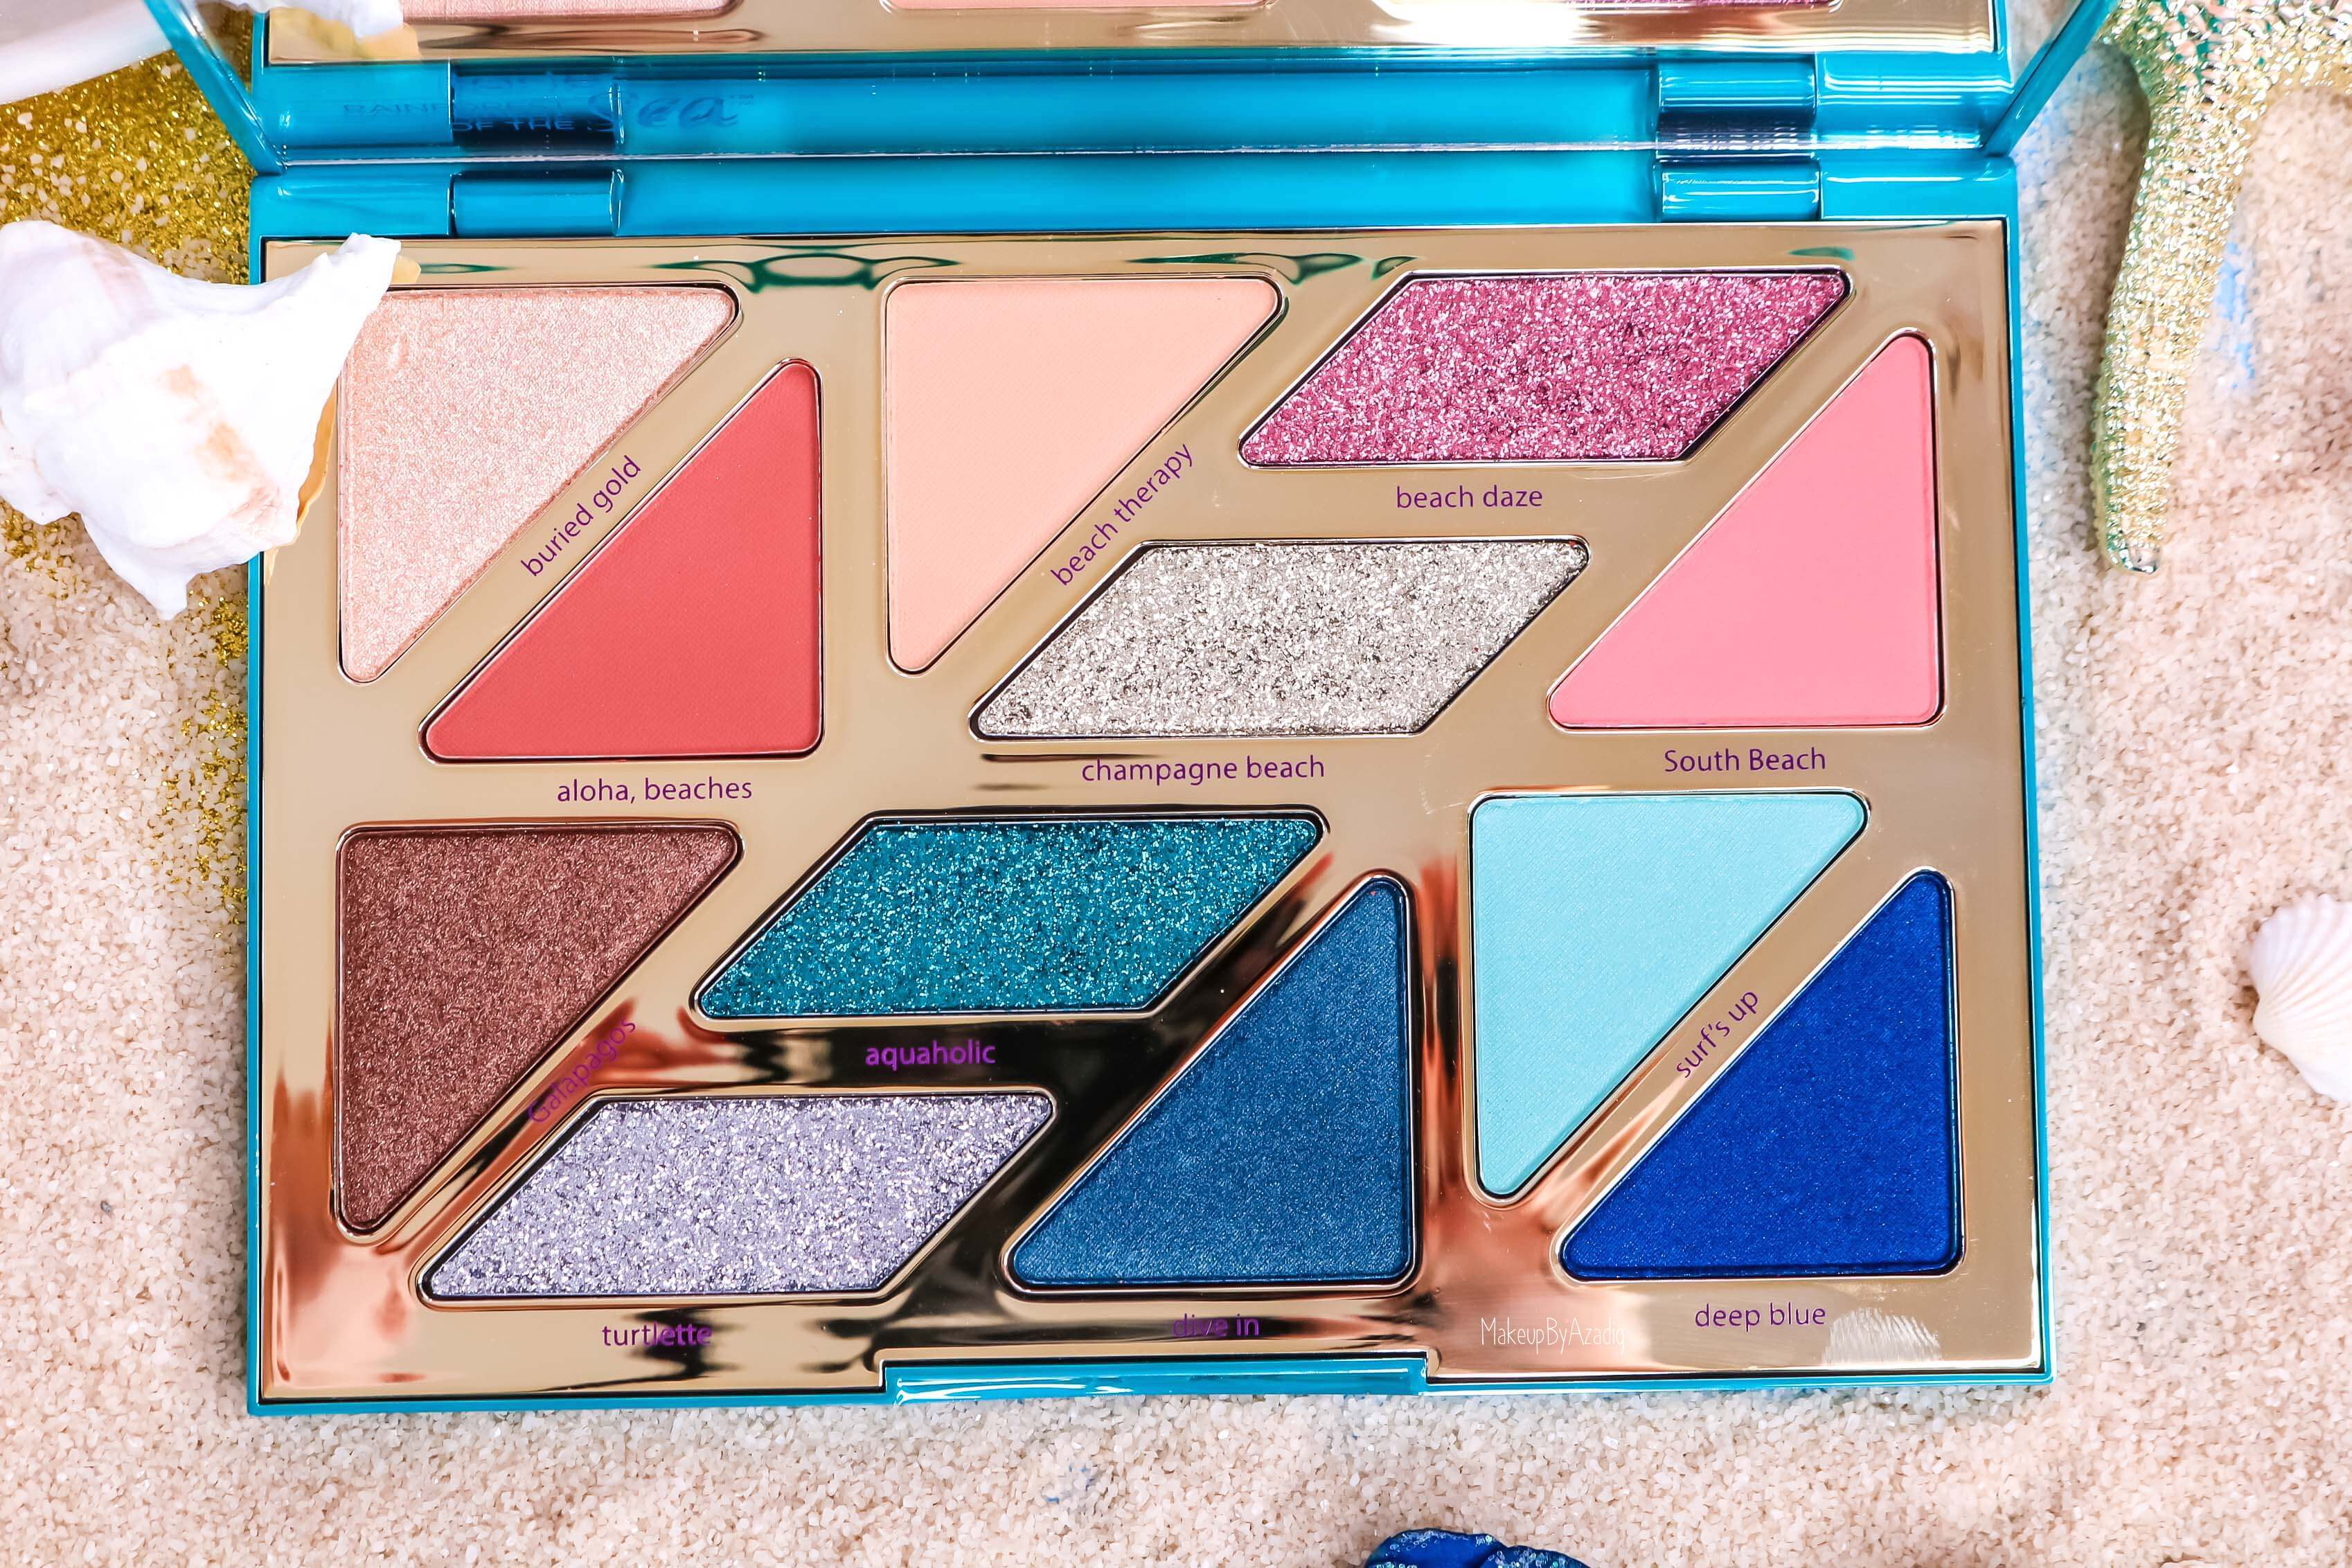 revue-palette-tarte-cosmetics-france-sephora-makeupbyazadig-swatch-prix-avis-rainforest-of-the-sea-couleurs